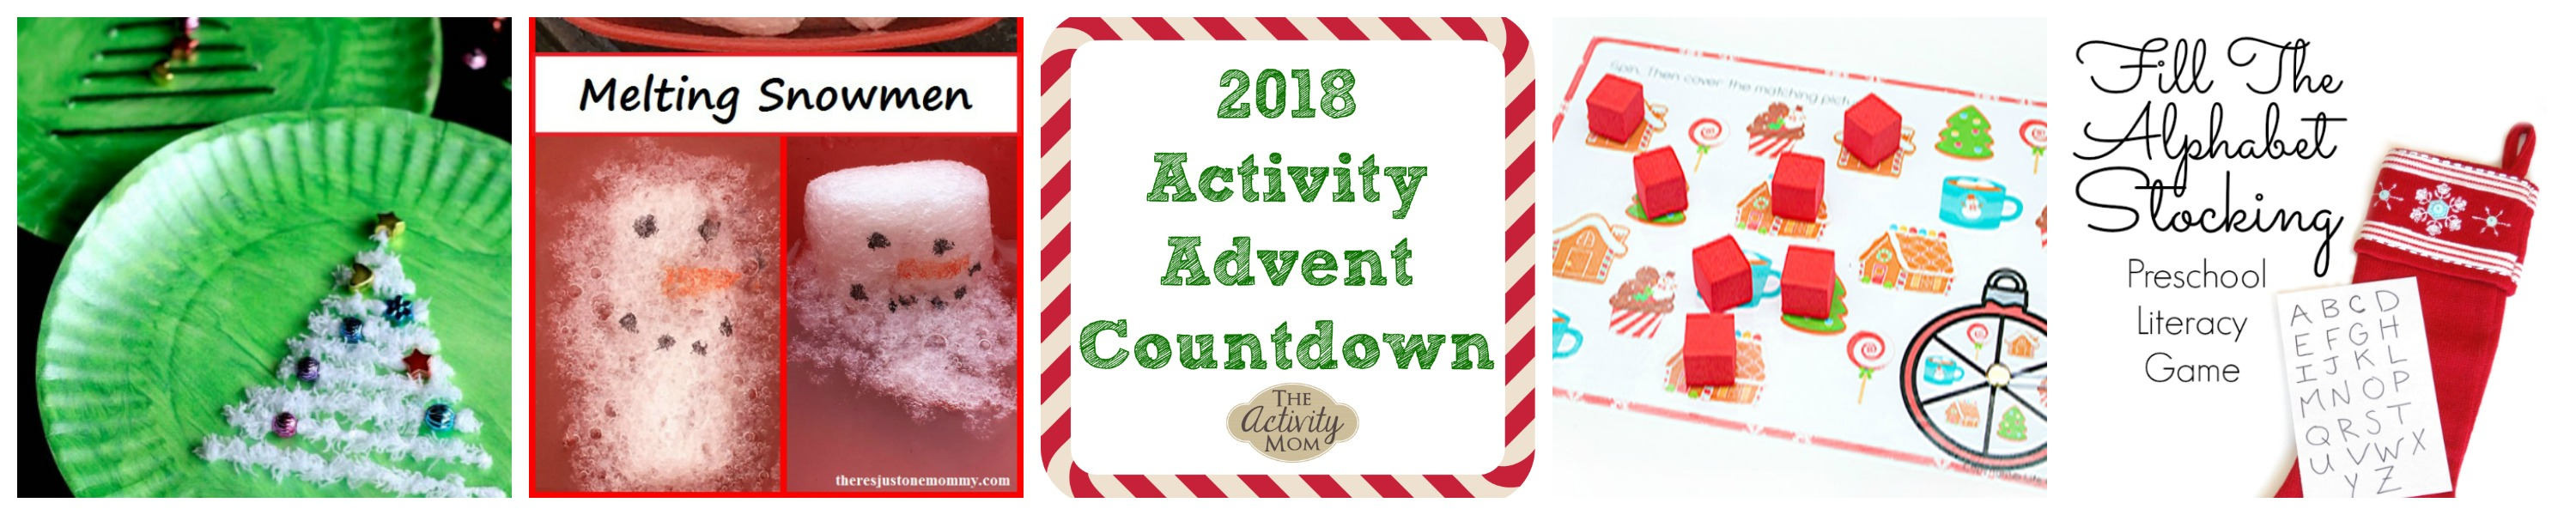 Activity Advent Countdown for Preschoolers and Toddlers